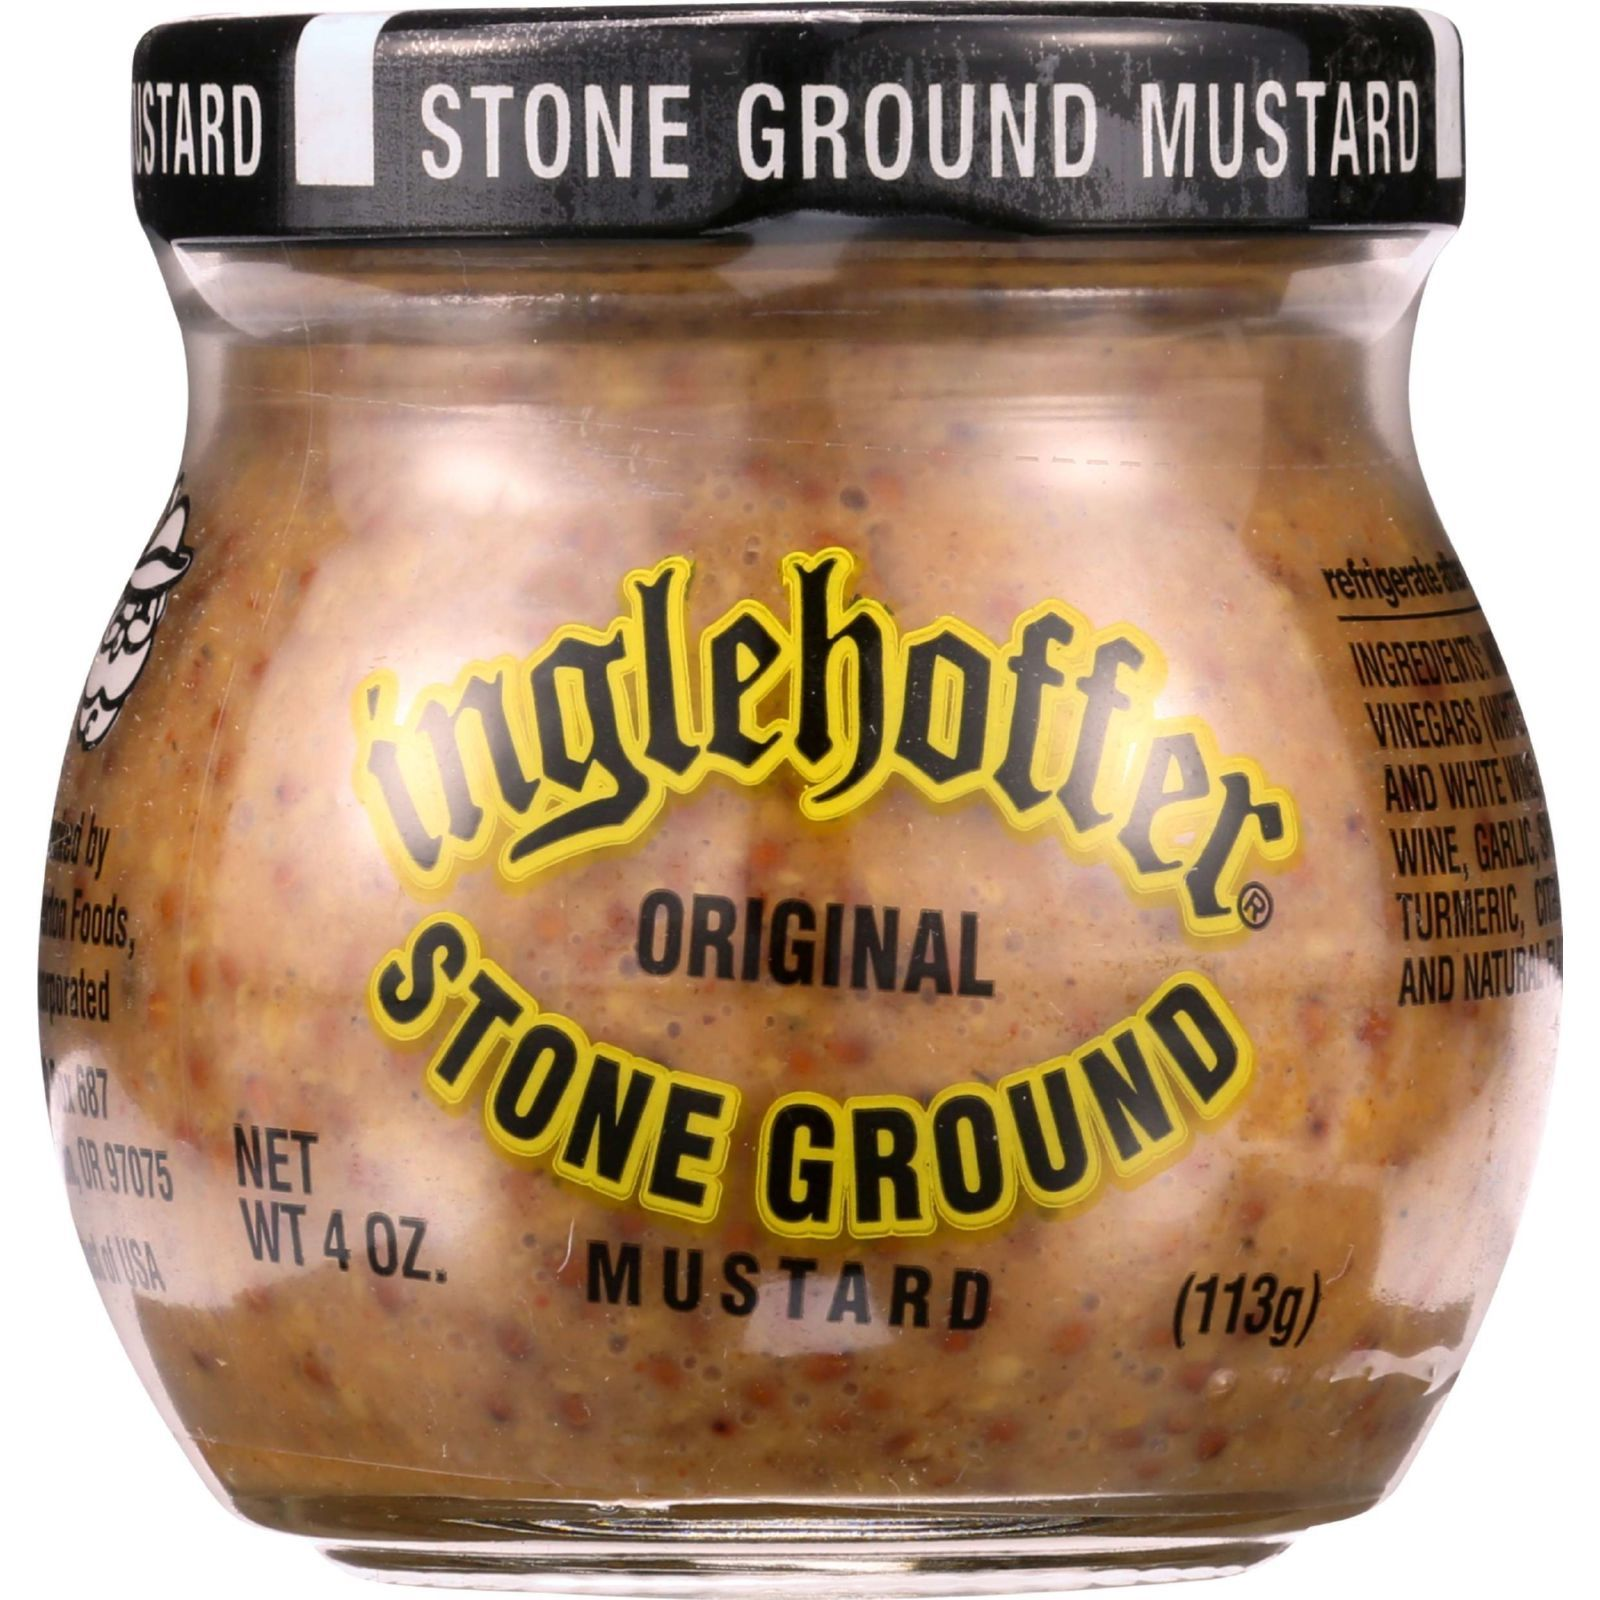 Inglehoffer Mustard - Stone Ground - 4 oz - 1 each